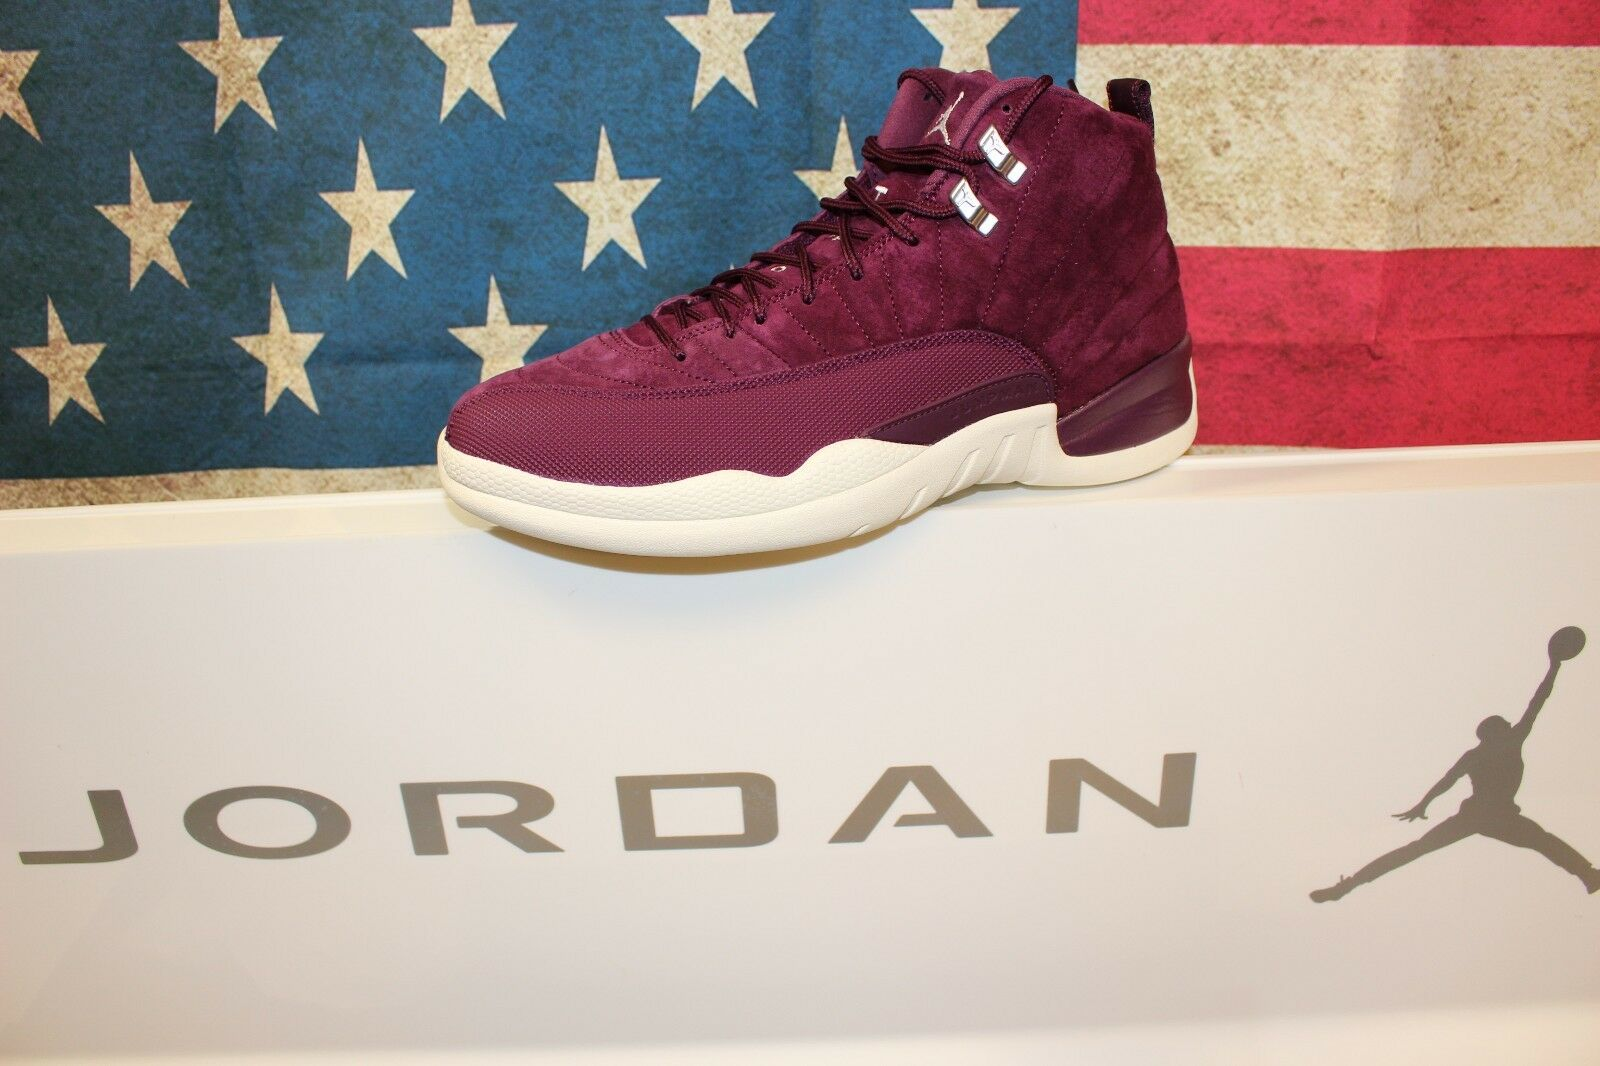 Nike Jordan Retro 12  Bordeaux  130690-617 Brand New DS Size 12